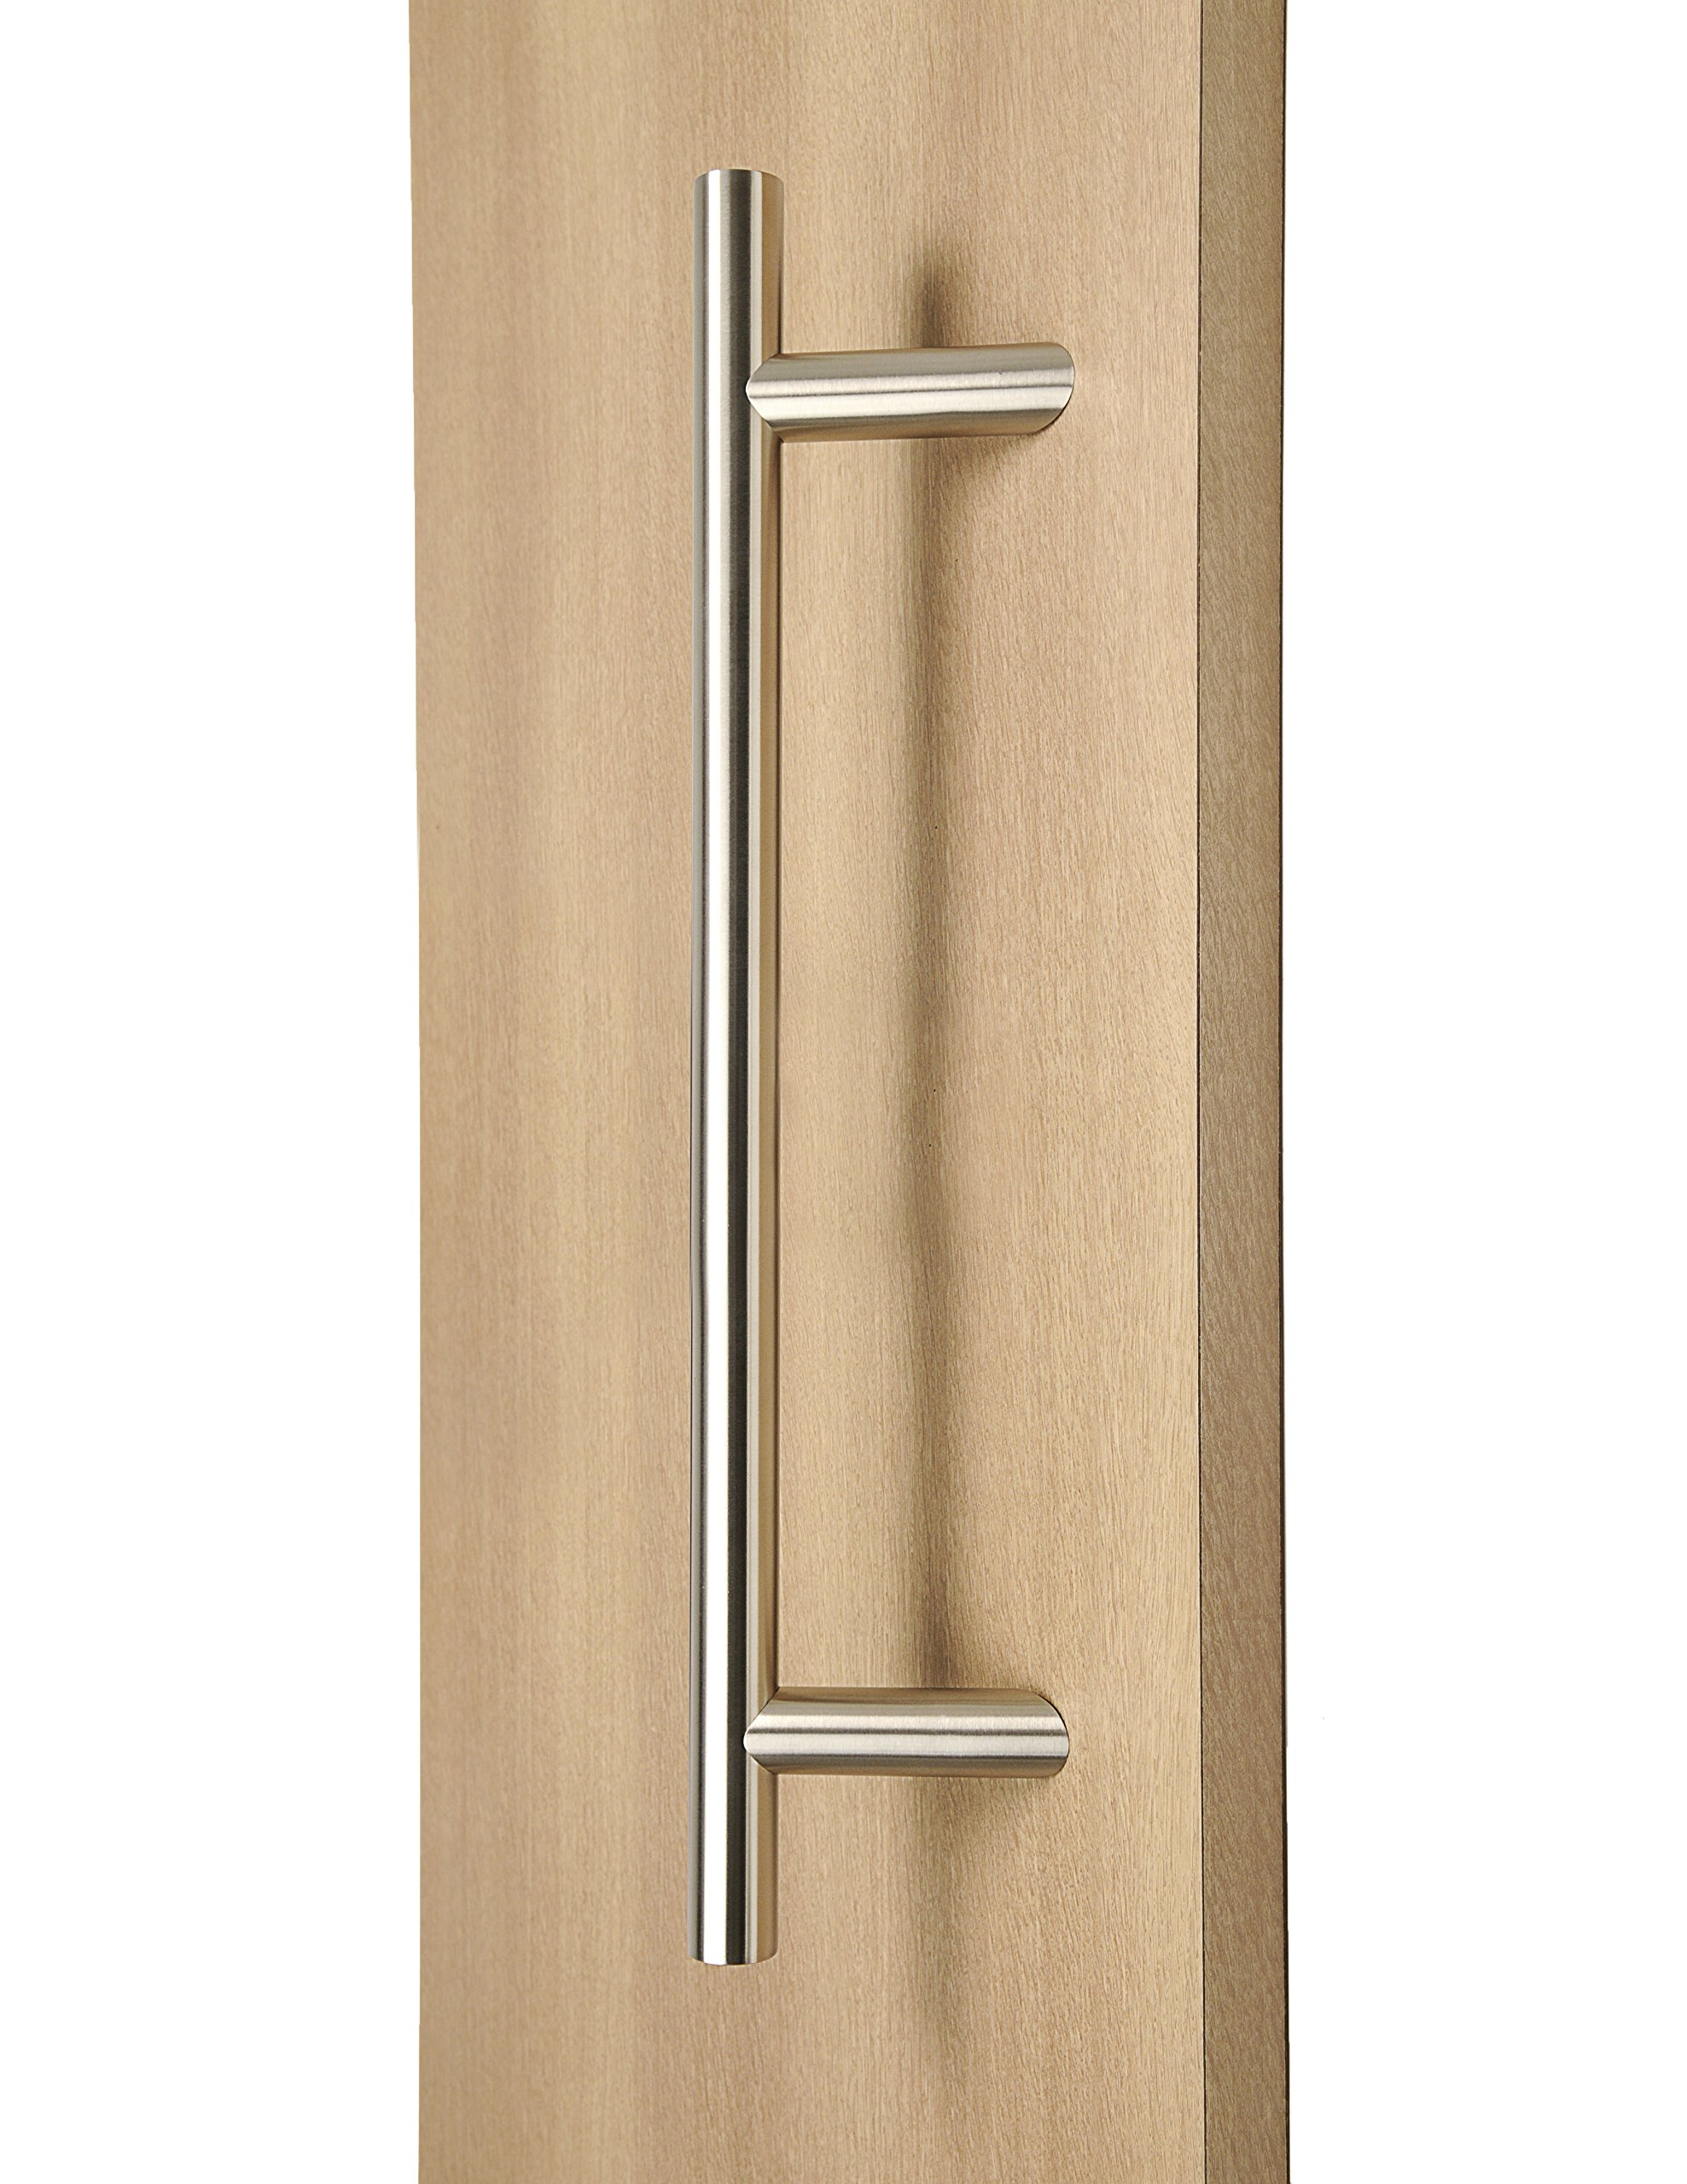 Offset Apollo Oblique Entrance Entry Front Timber Frameless Glass Barn Sliding Garage Door Pull Push Handles (36 inches / 900mm)